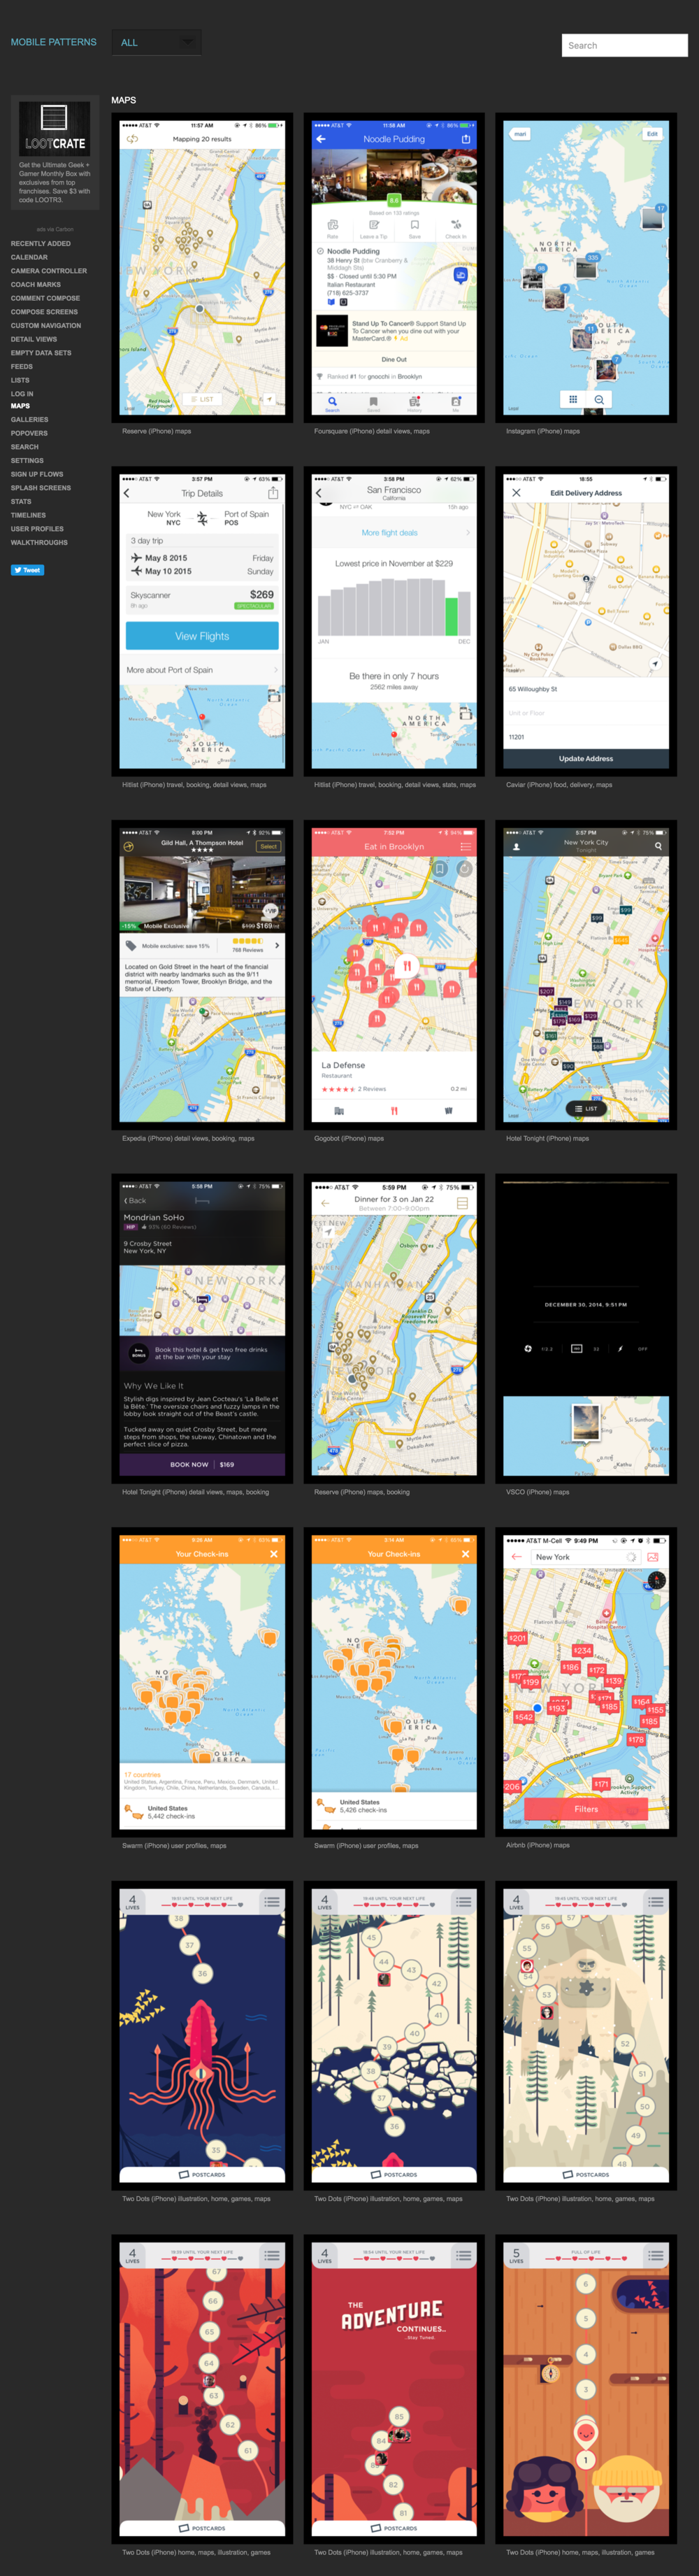 screencapture-mobile-patterns-maps-1478560027866.png